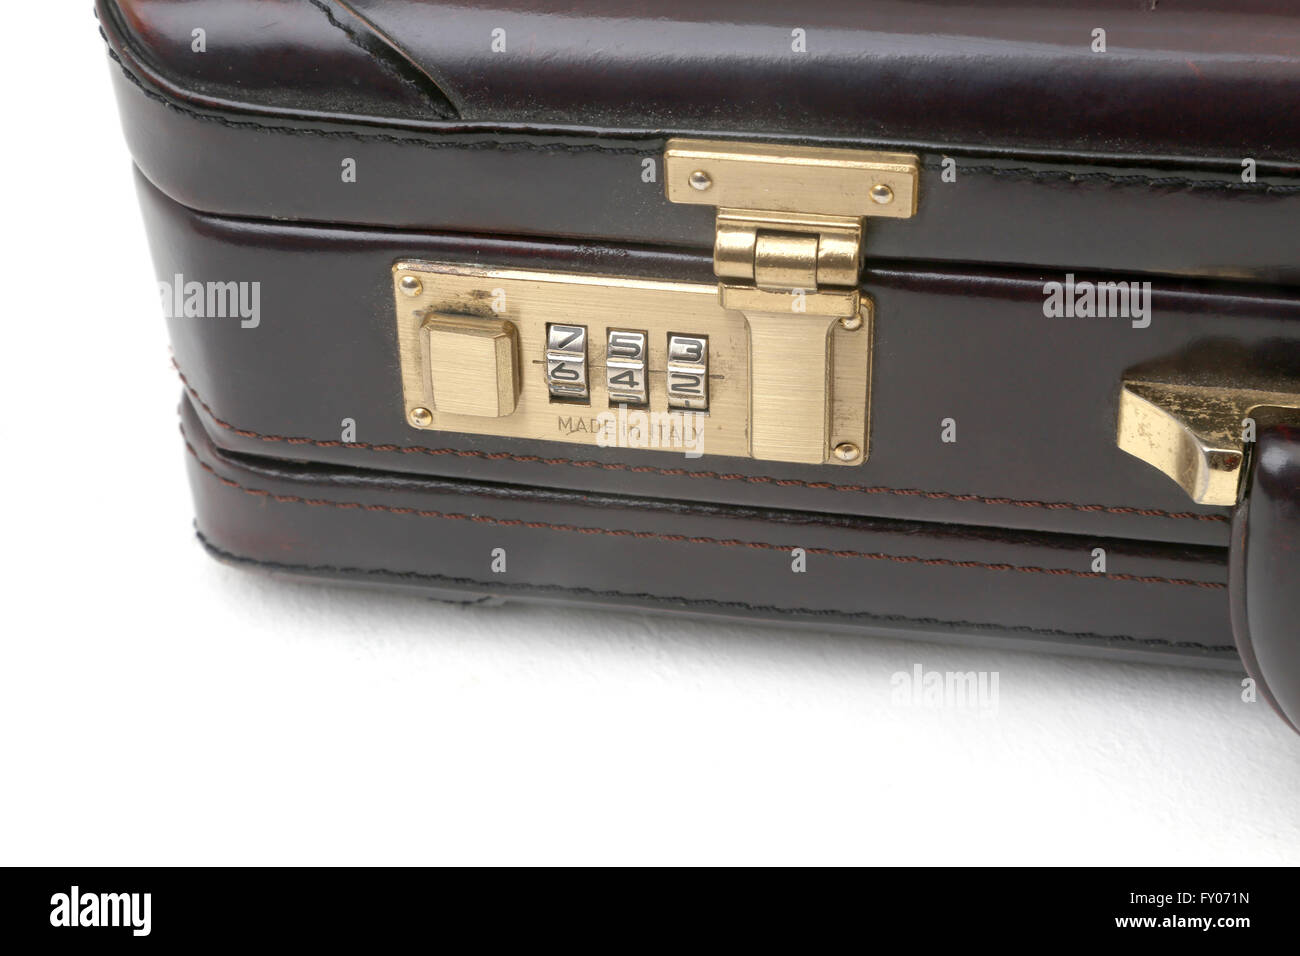 Italian Brown Leather Briefcase With Combination Lock - Stock Image